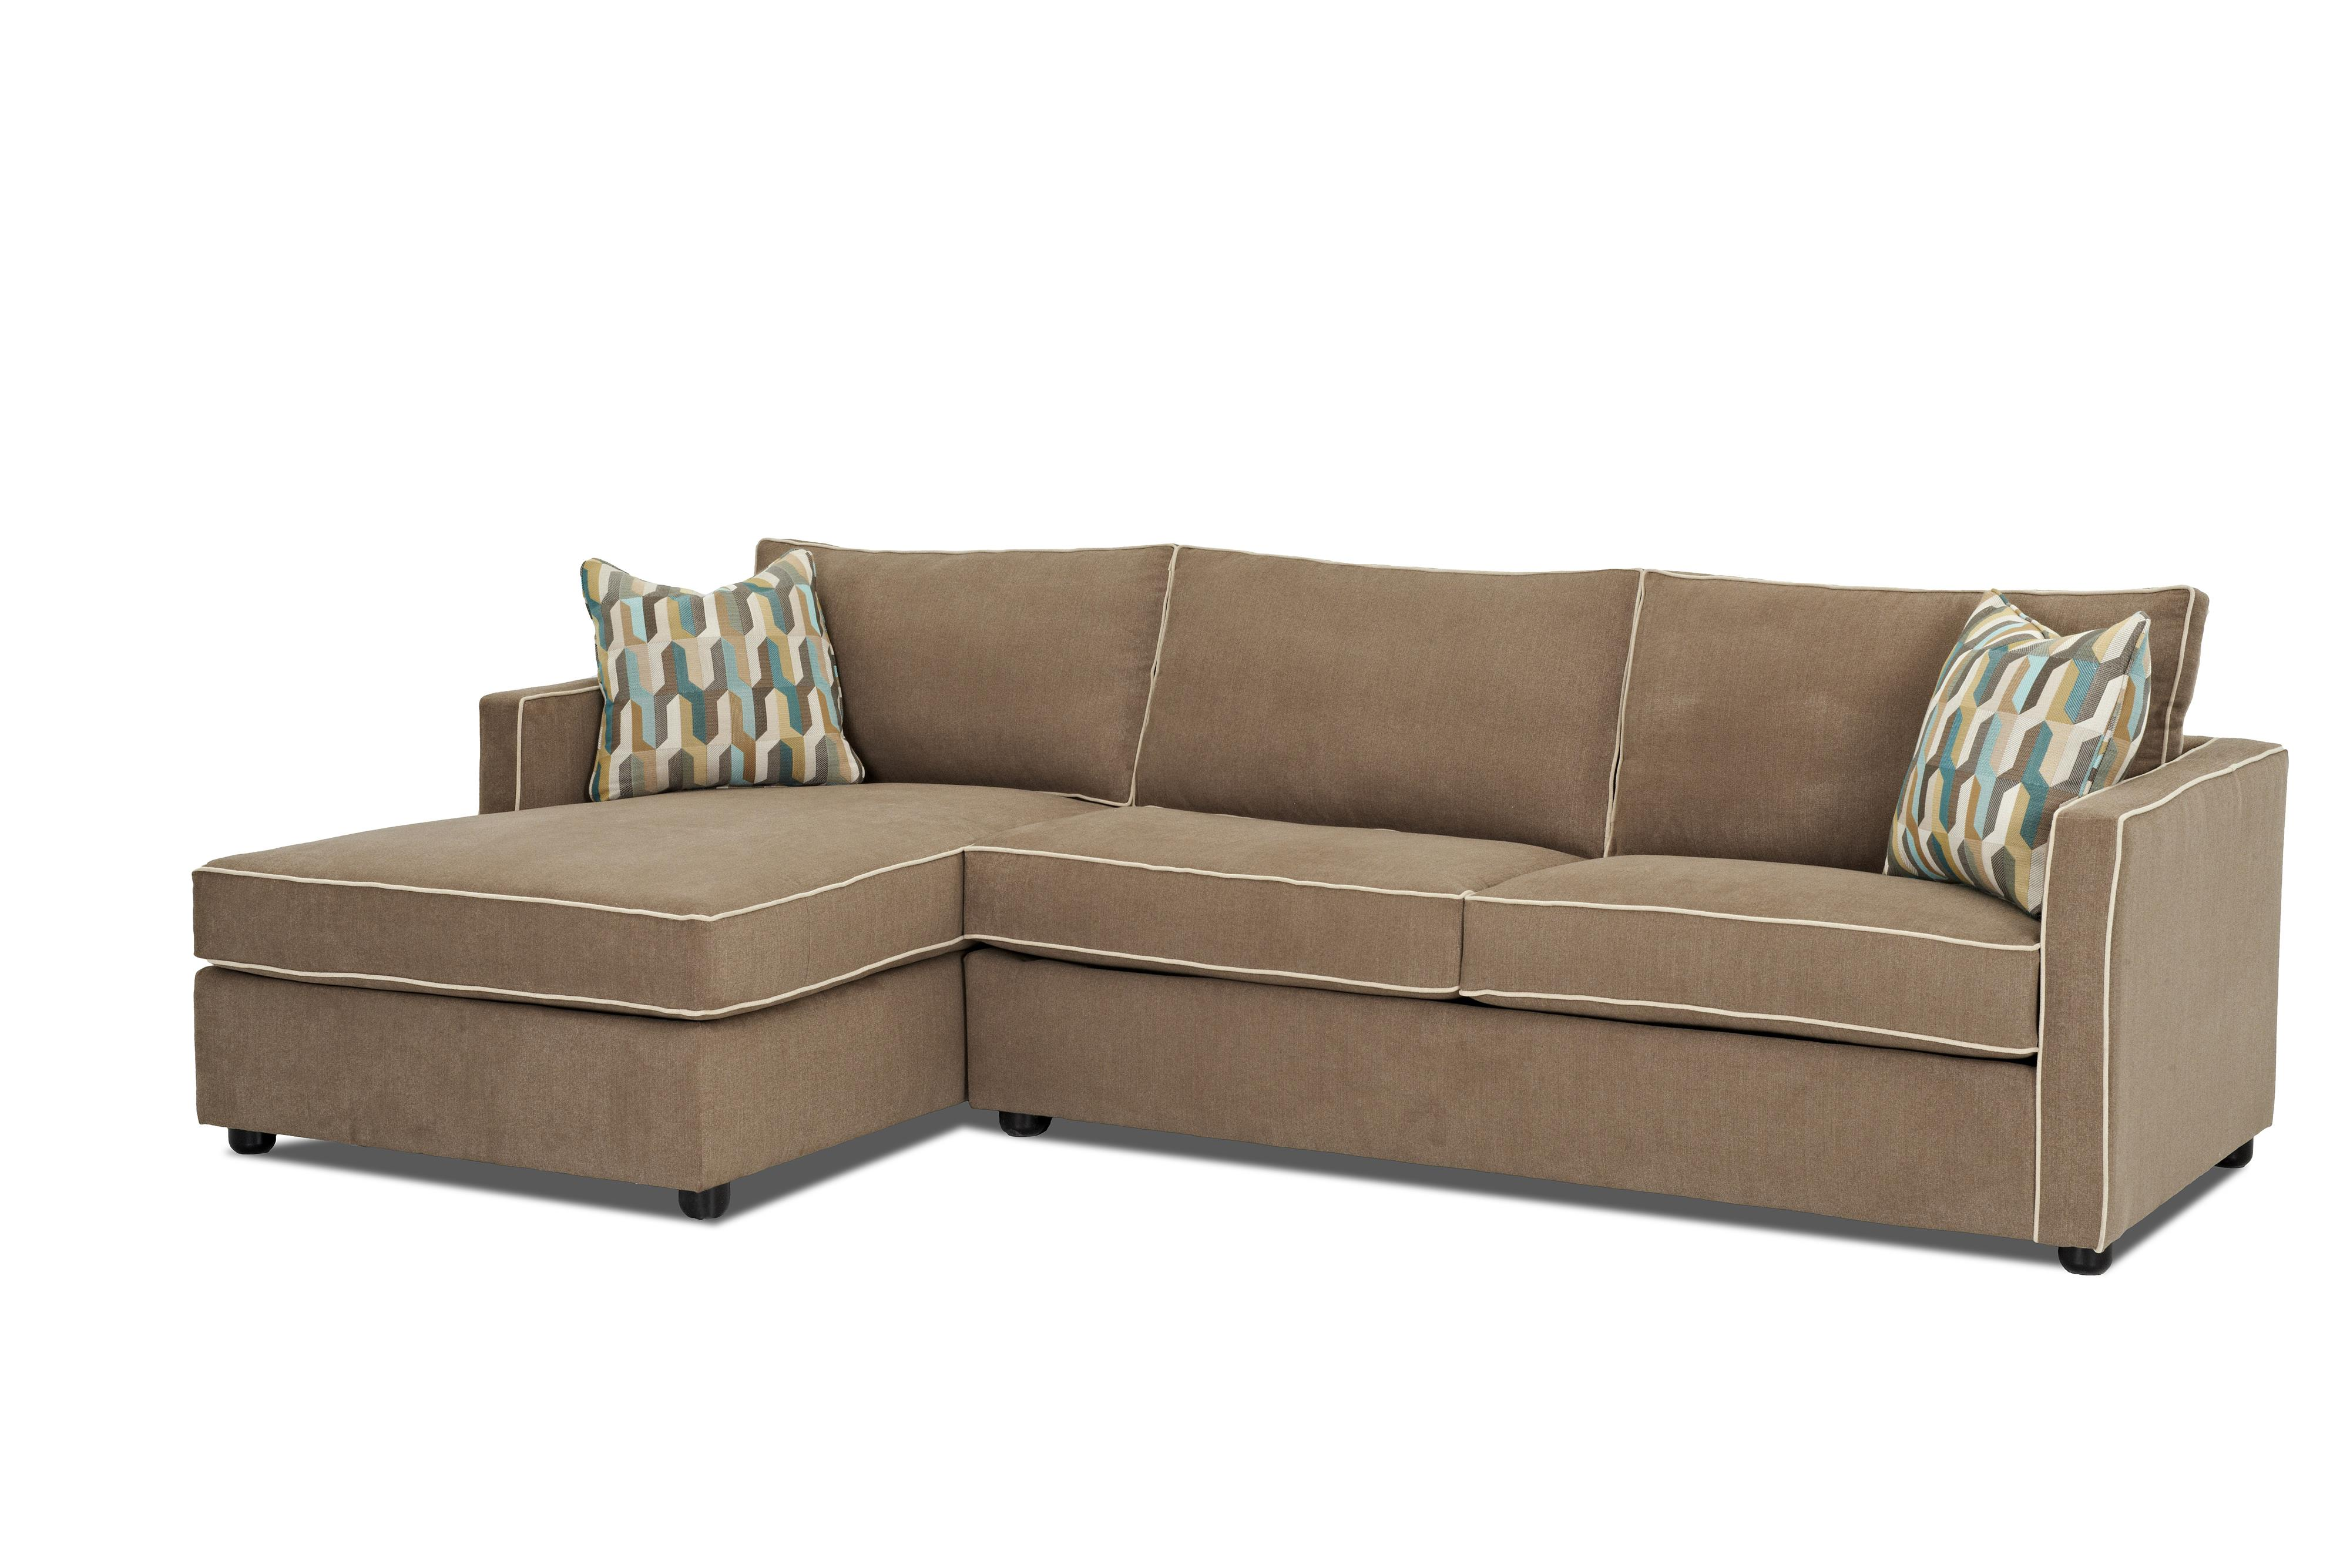 Klaussner Pendry Sectional Sofa with Chaise - Item Number: K89500L CHASE+R S-BrooksideTaupe